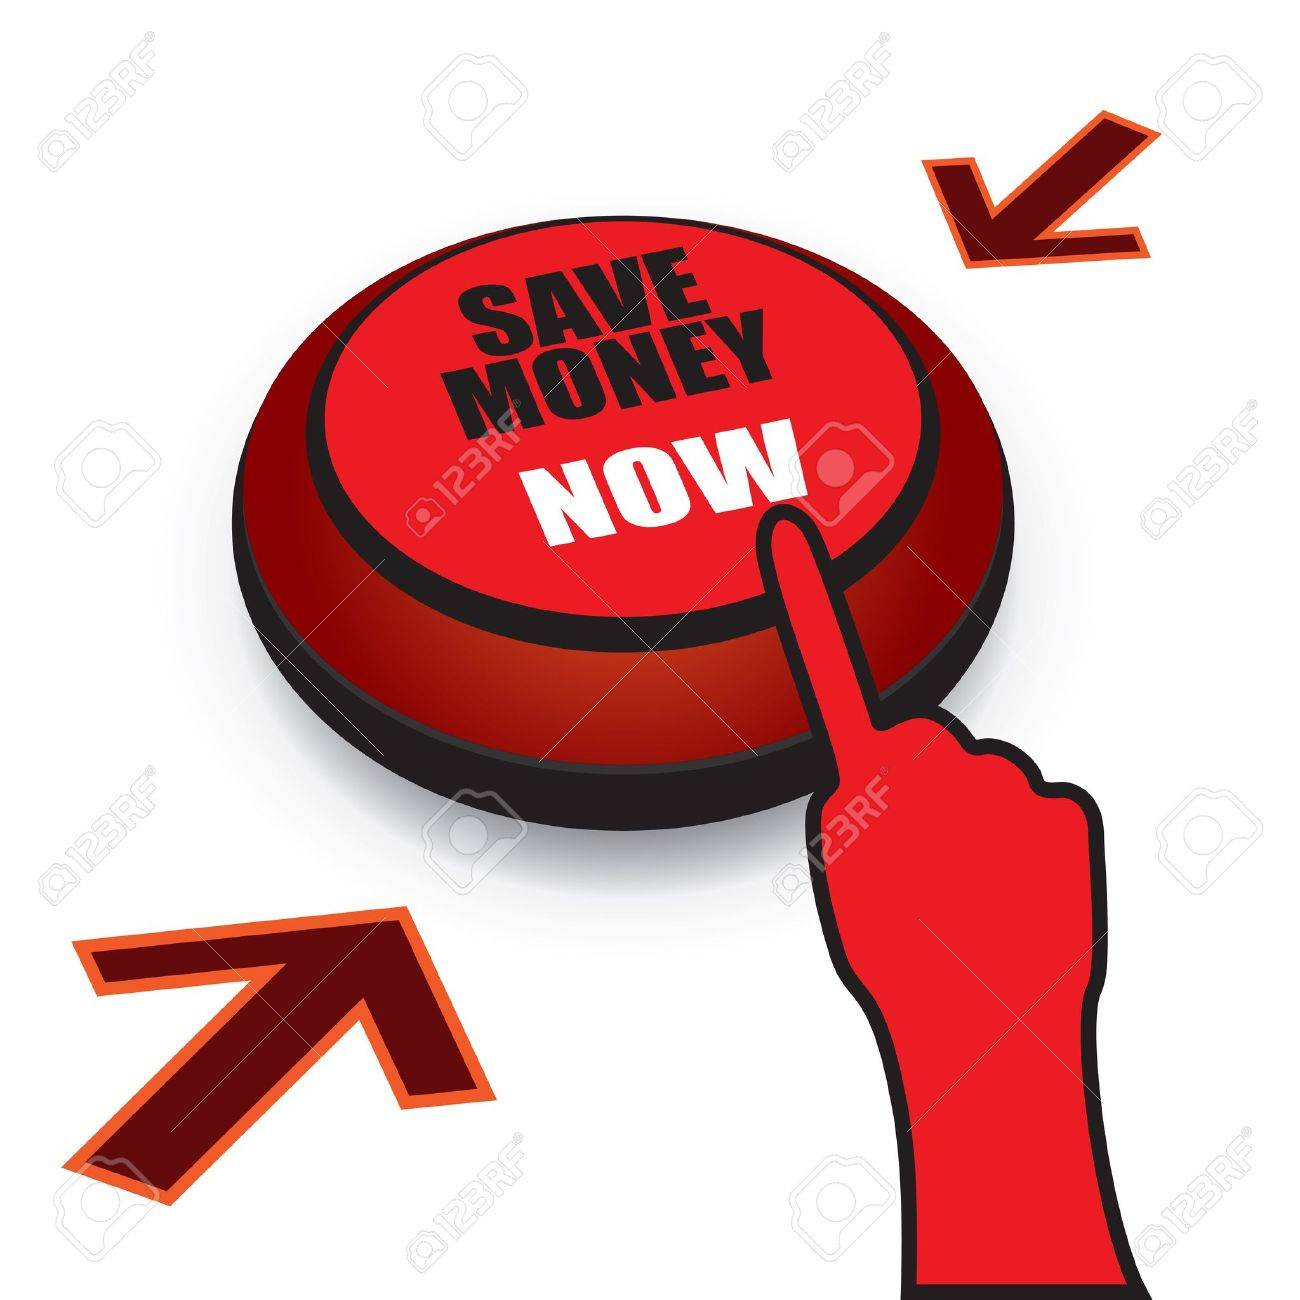 Save money now button with finger ready to press the button. CMYK colors used. Organized by layers. Gradients used. Stock Vector - 11674294